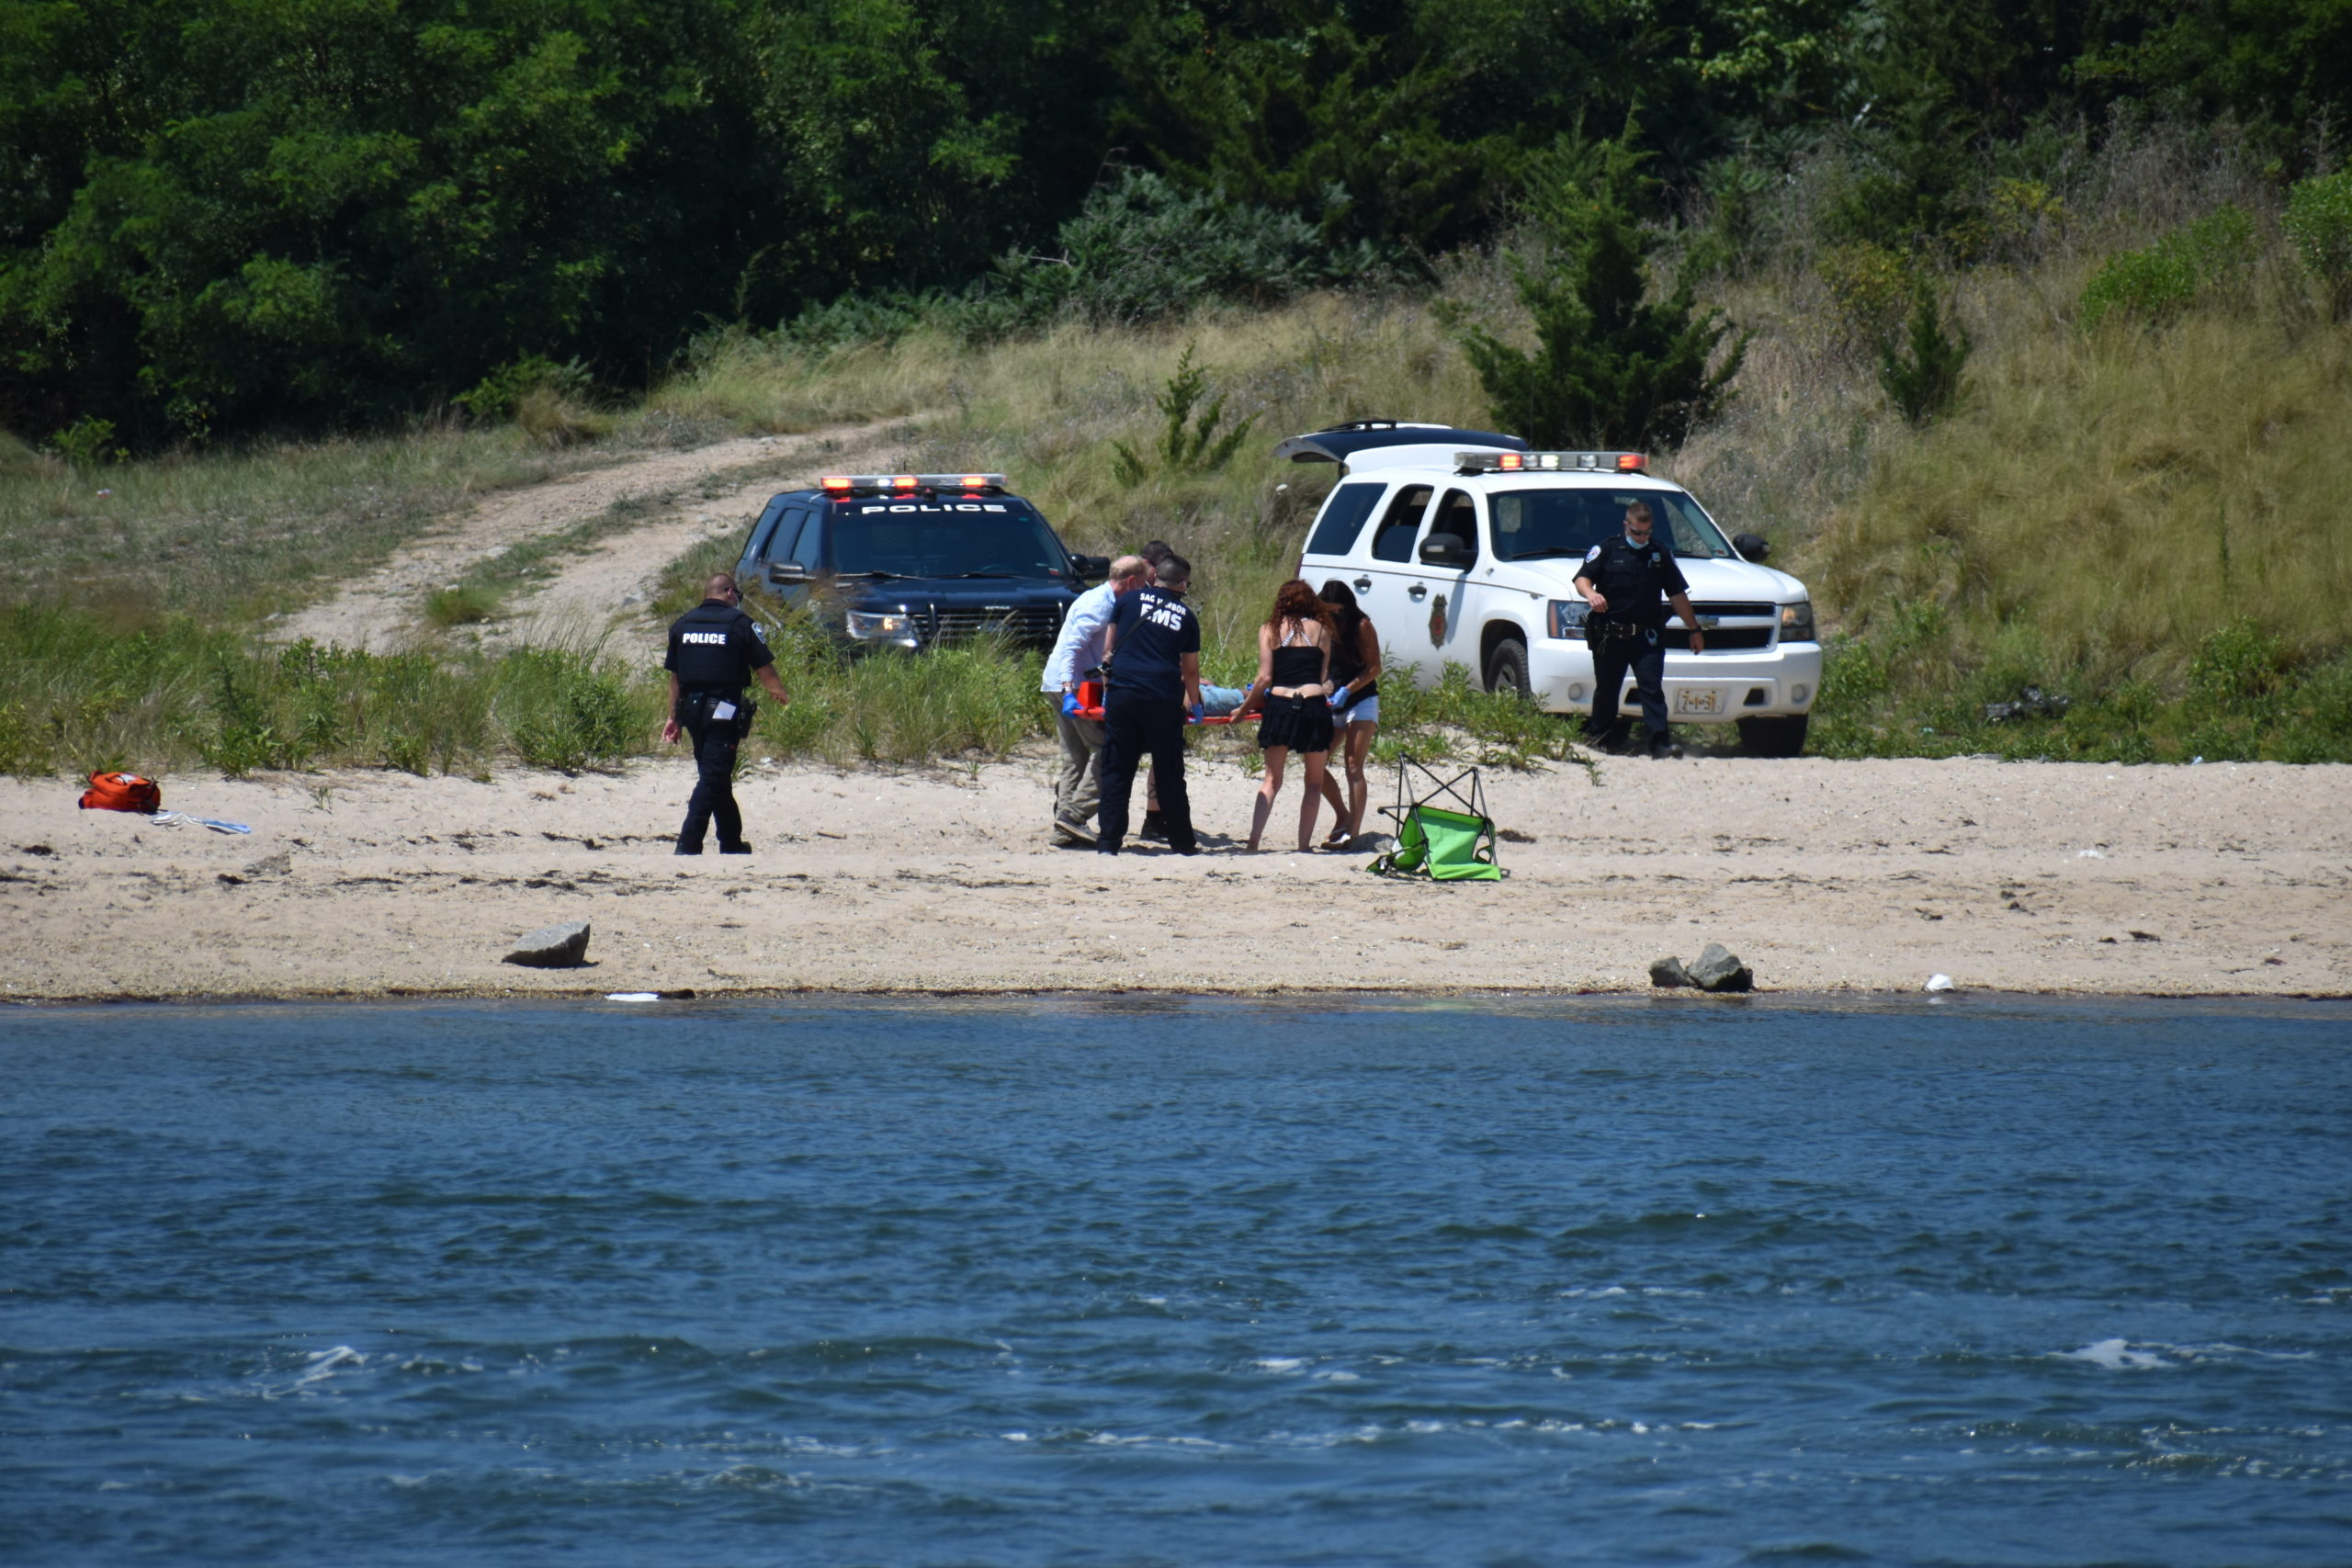 First responders pulled three swimmers from the water near North Haven Bridge Sunday. STEPHEN KOTZ